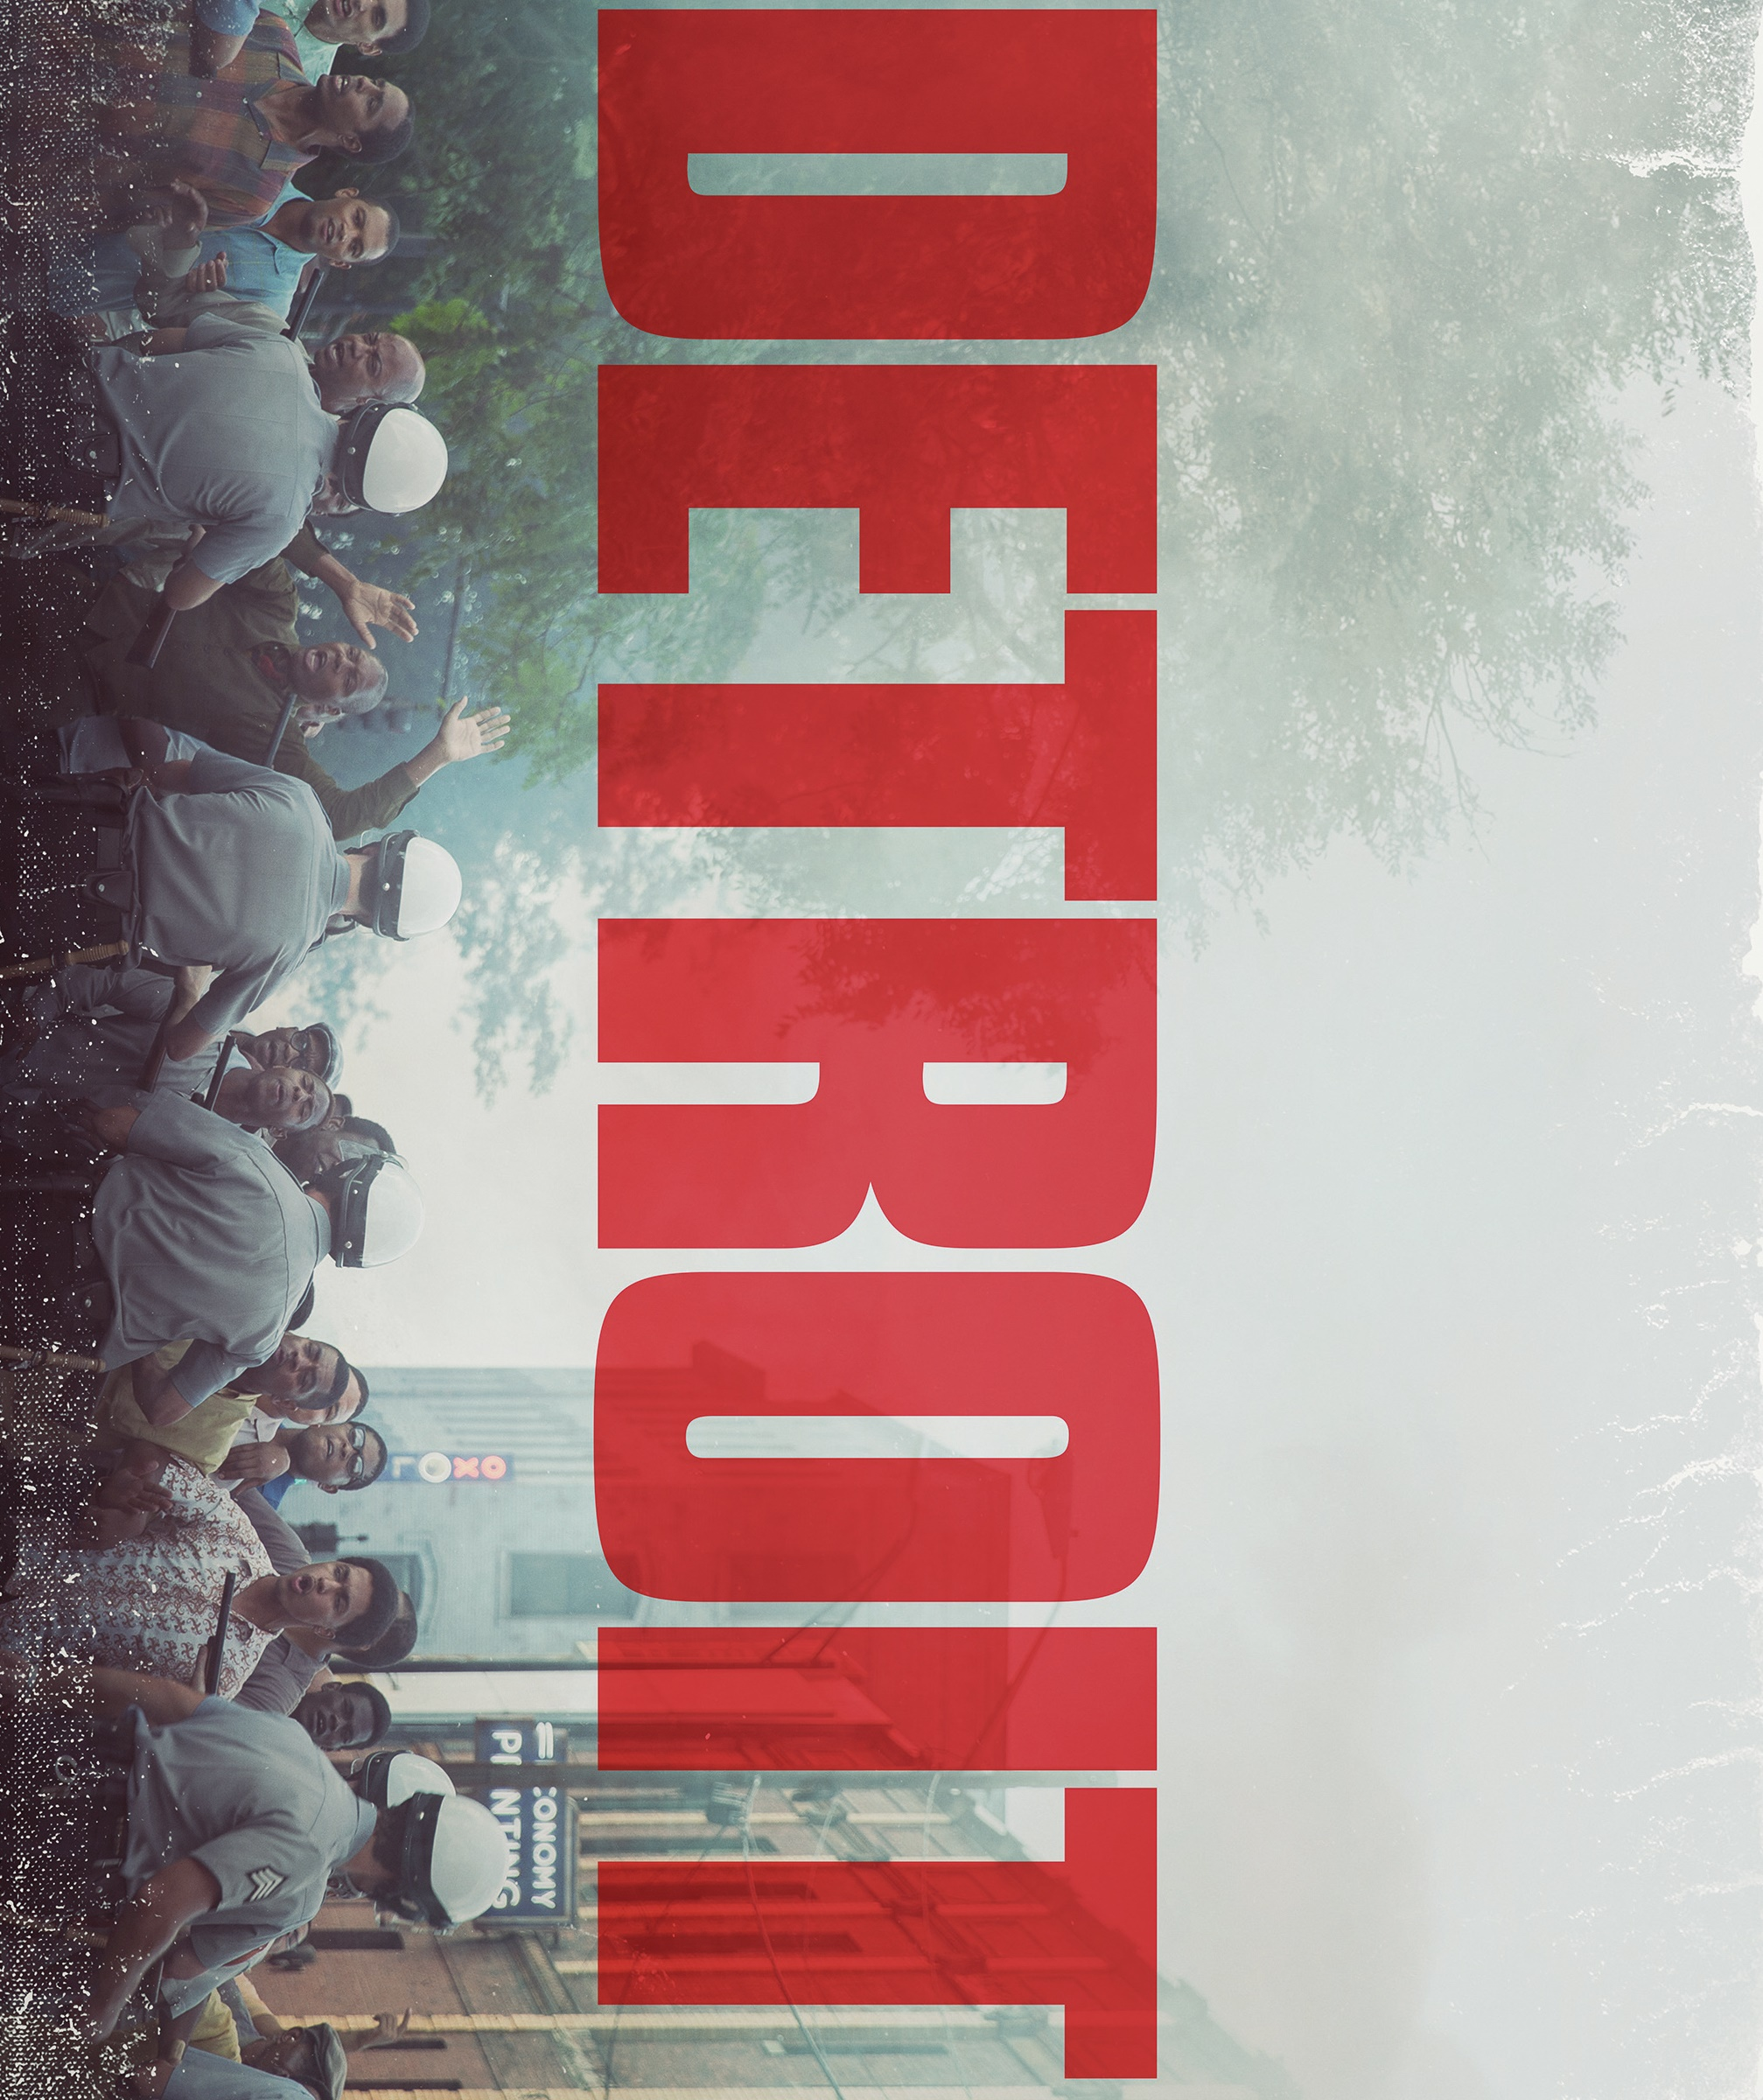 detroit trailer, kathryn bigelow